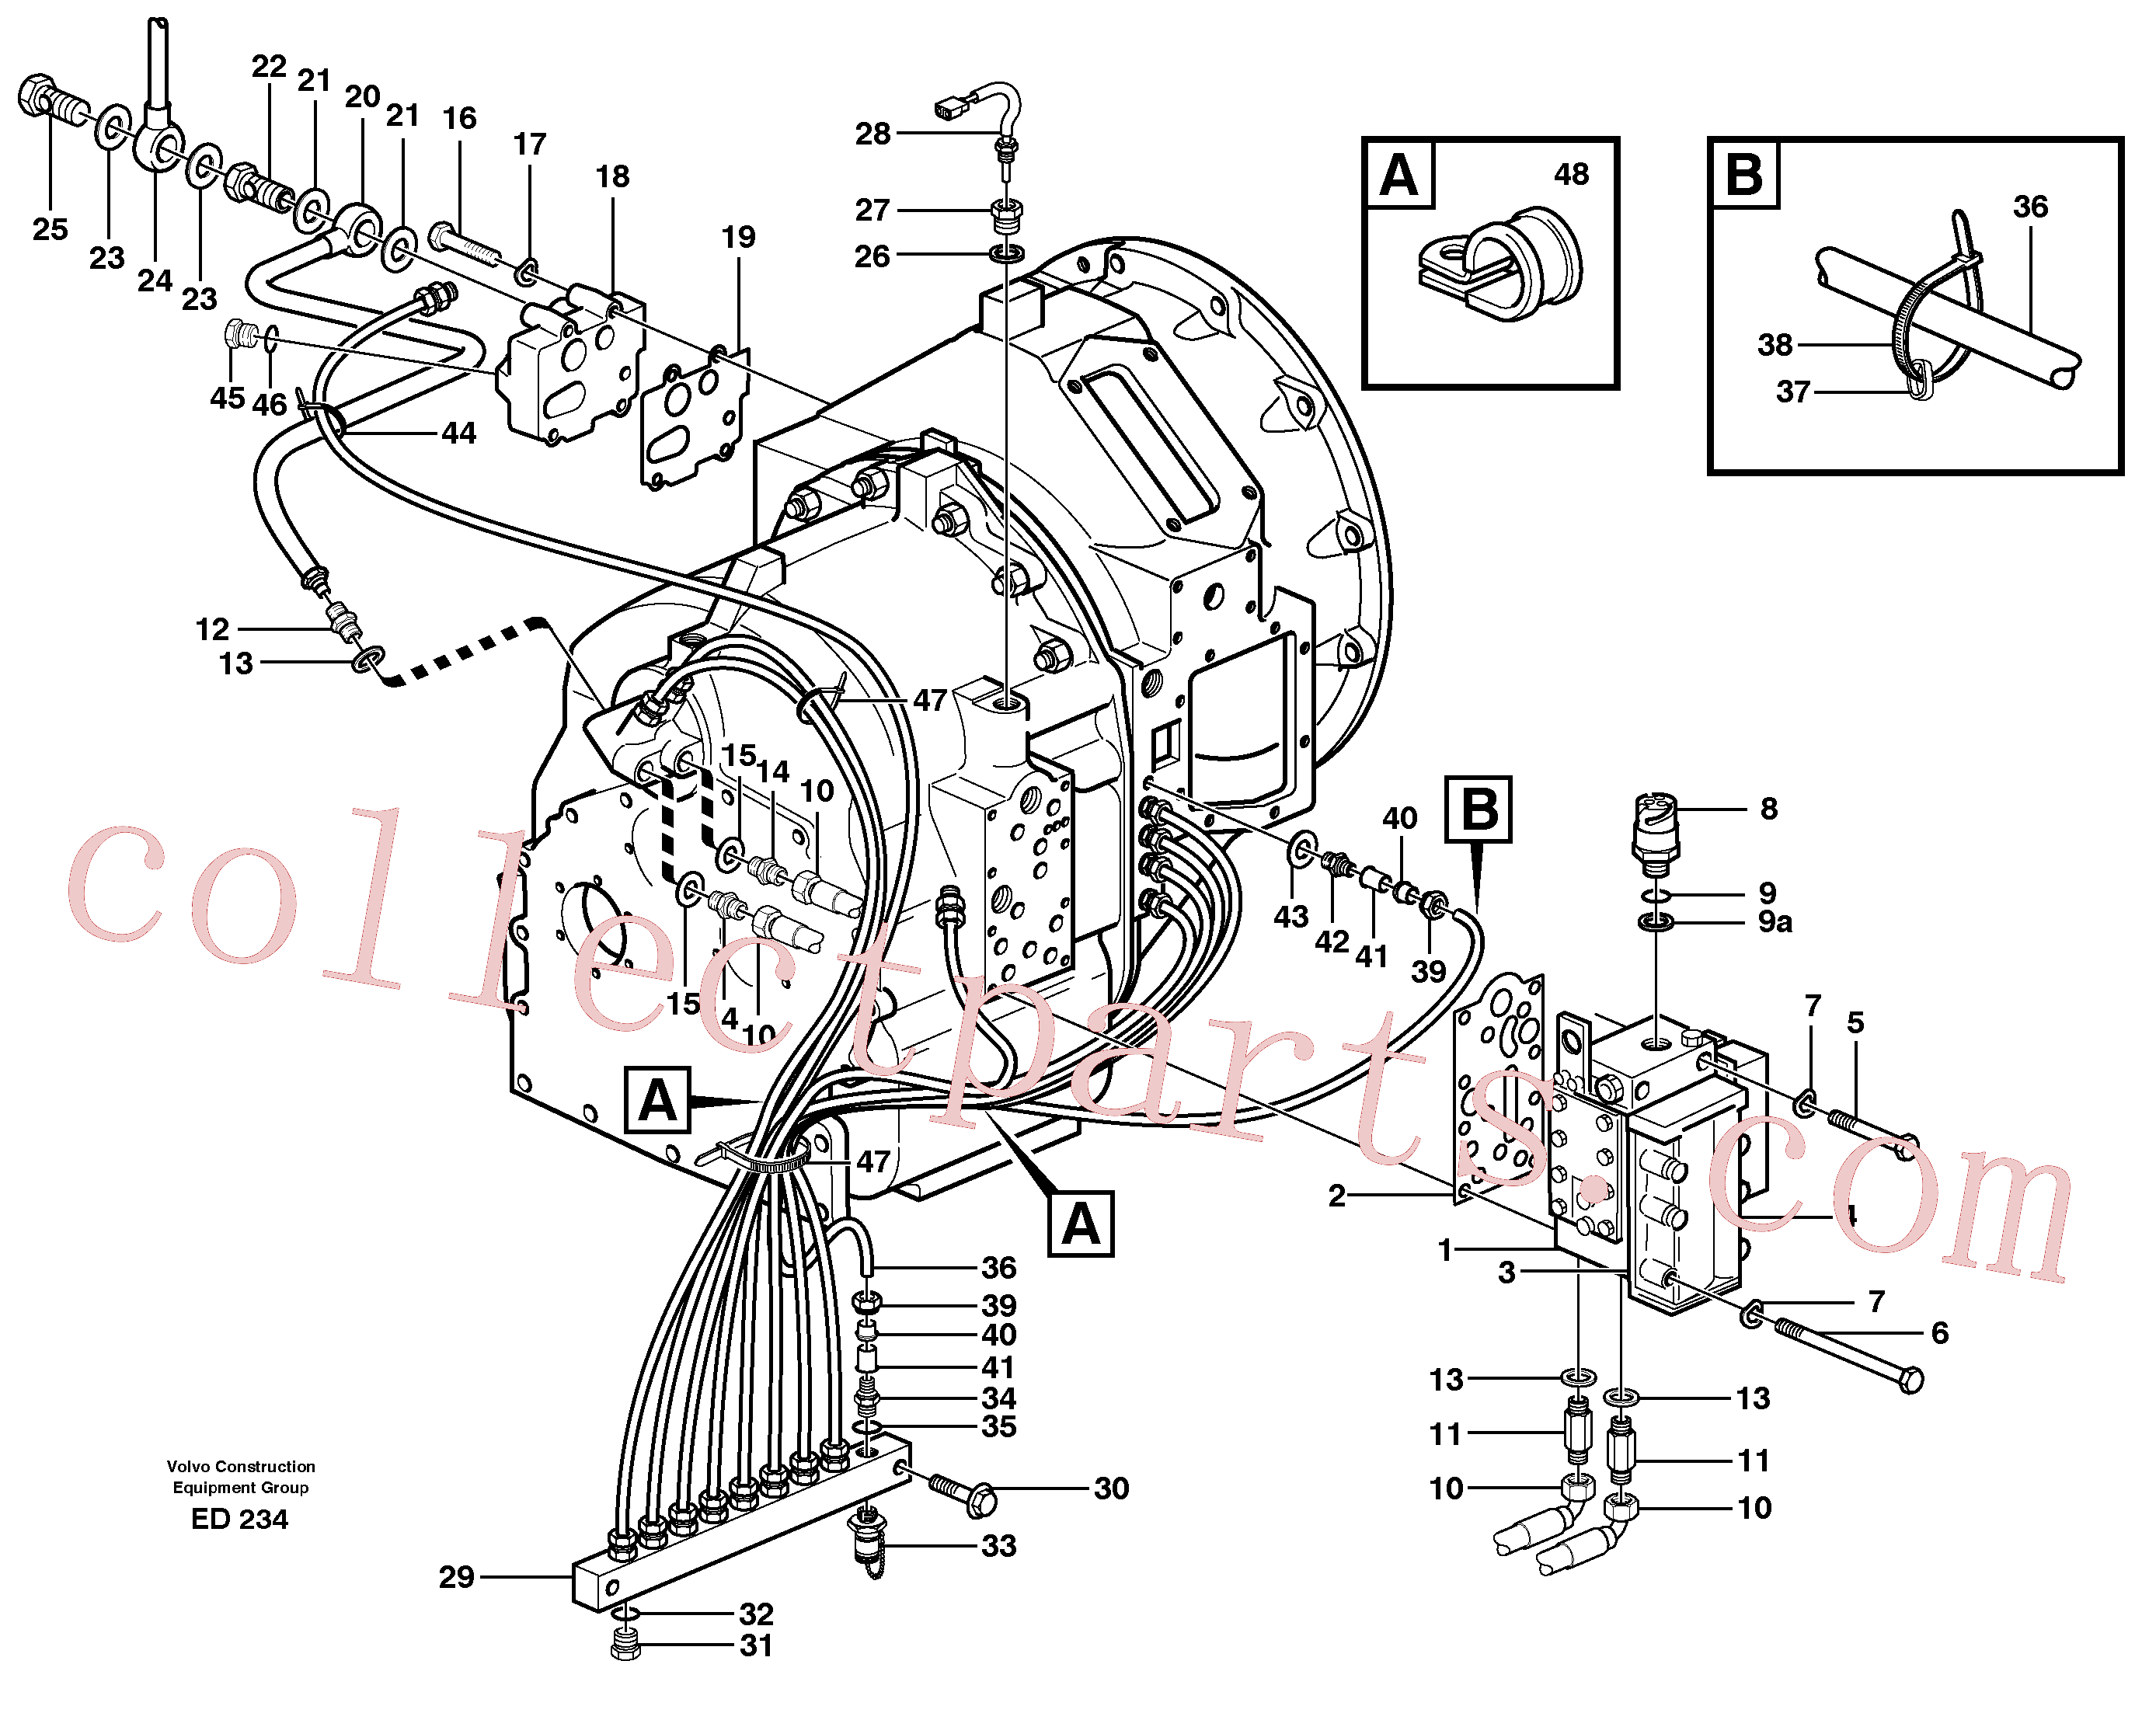 VOE11130884 for Volvo Hydraulic lines and valve(ED234 assembly)